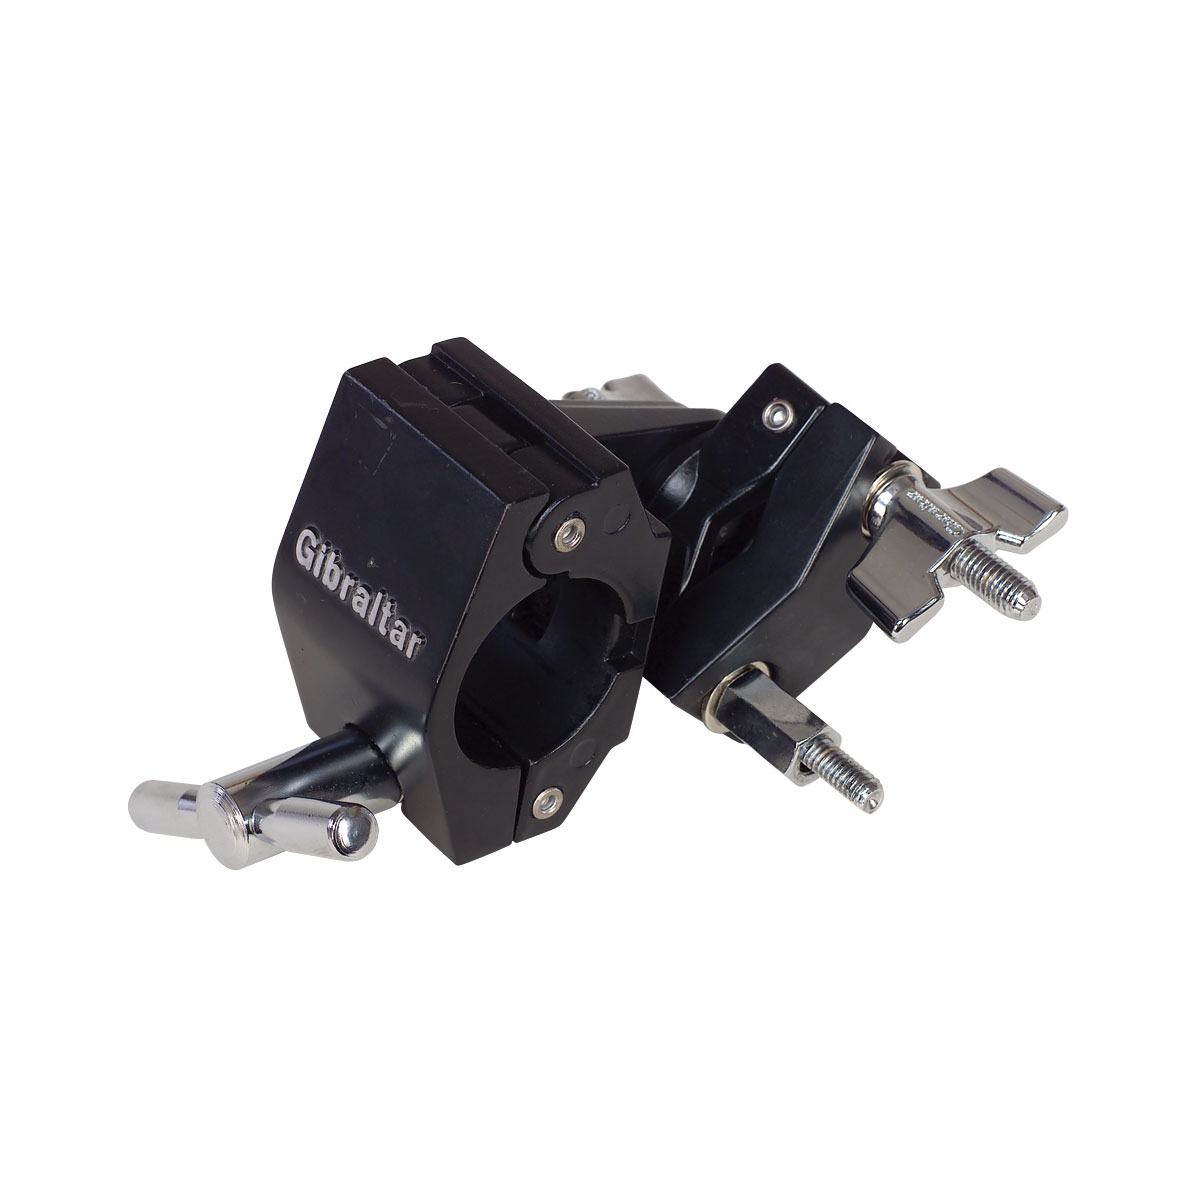 Gibraltar Adjustable Multi Clamp